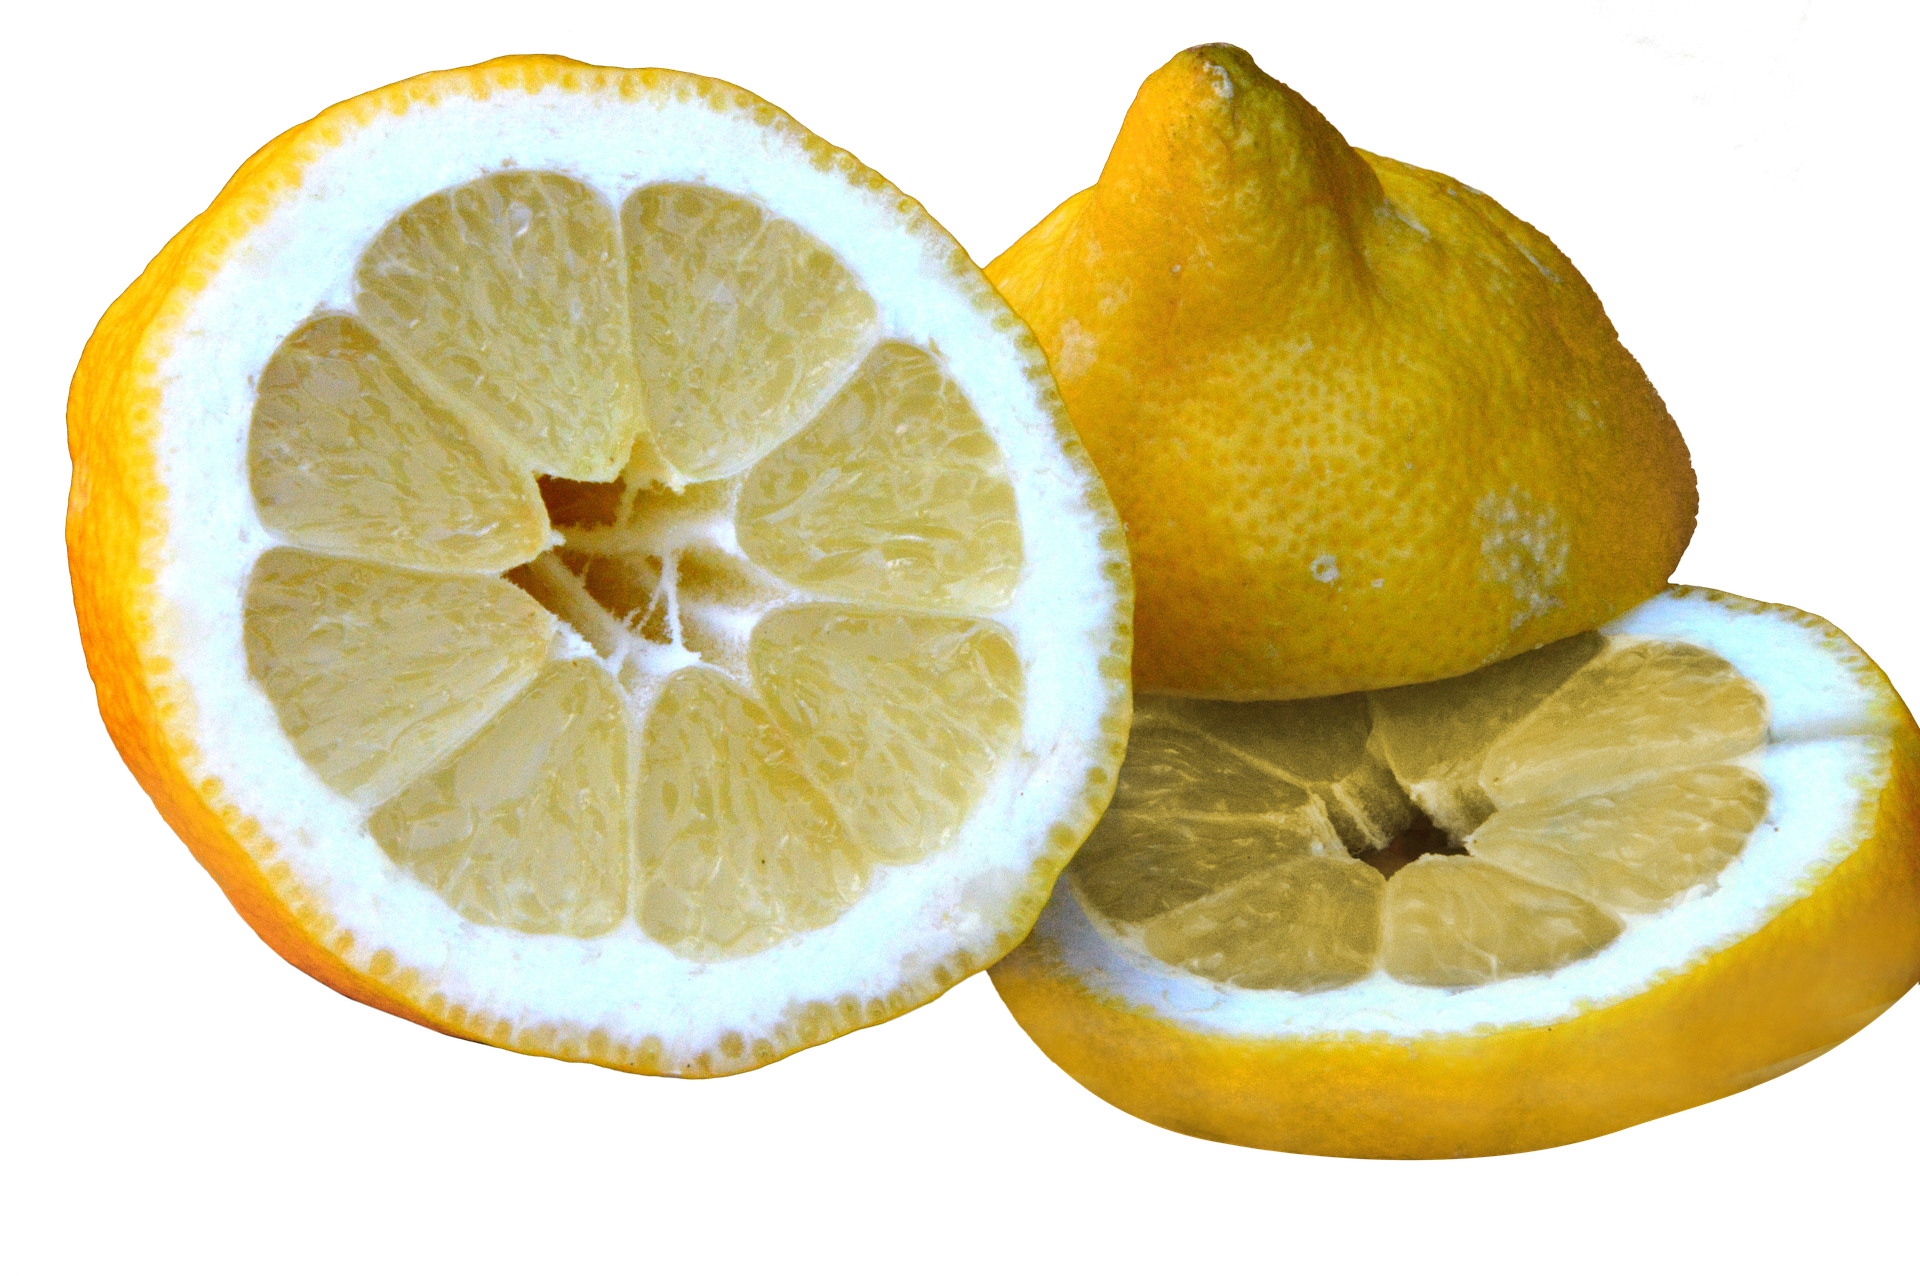 lemon-3983581_1920.png